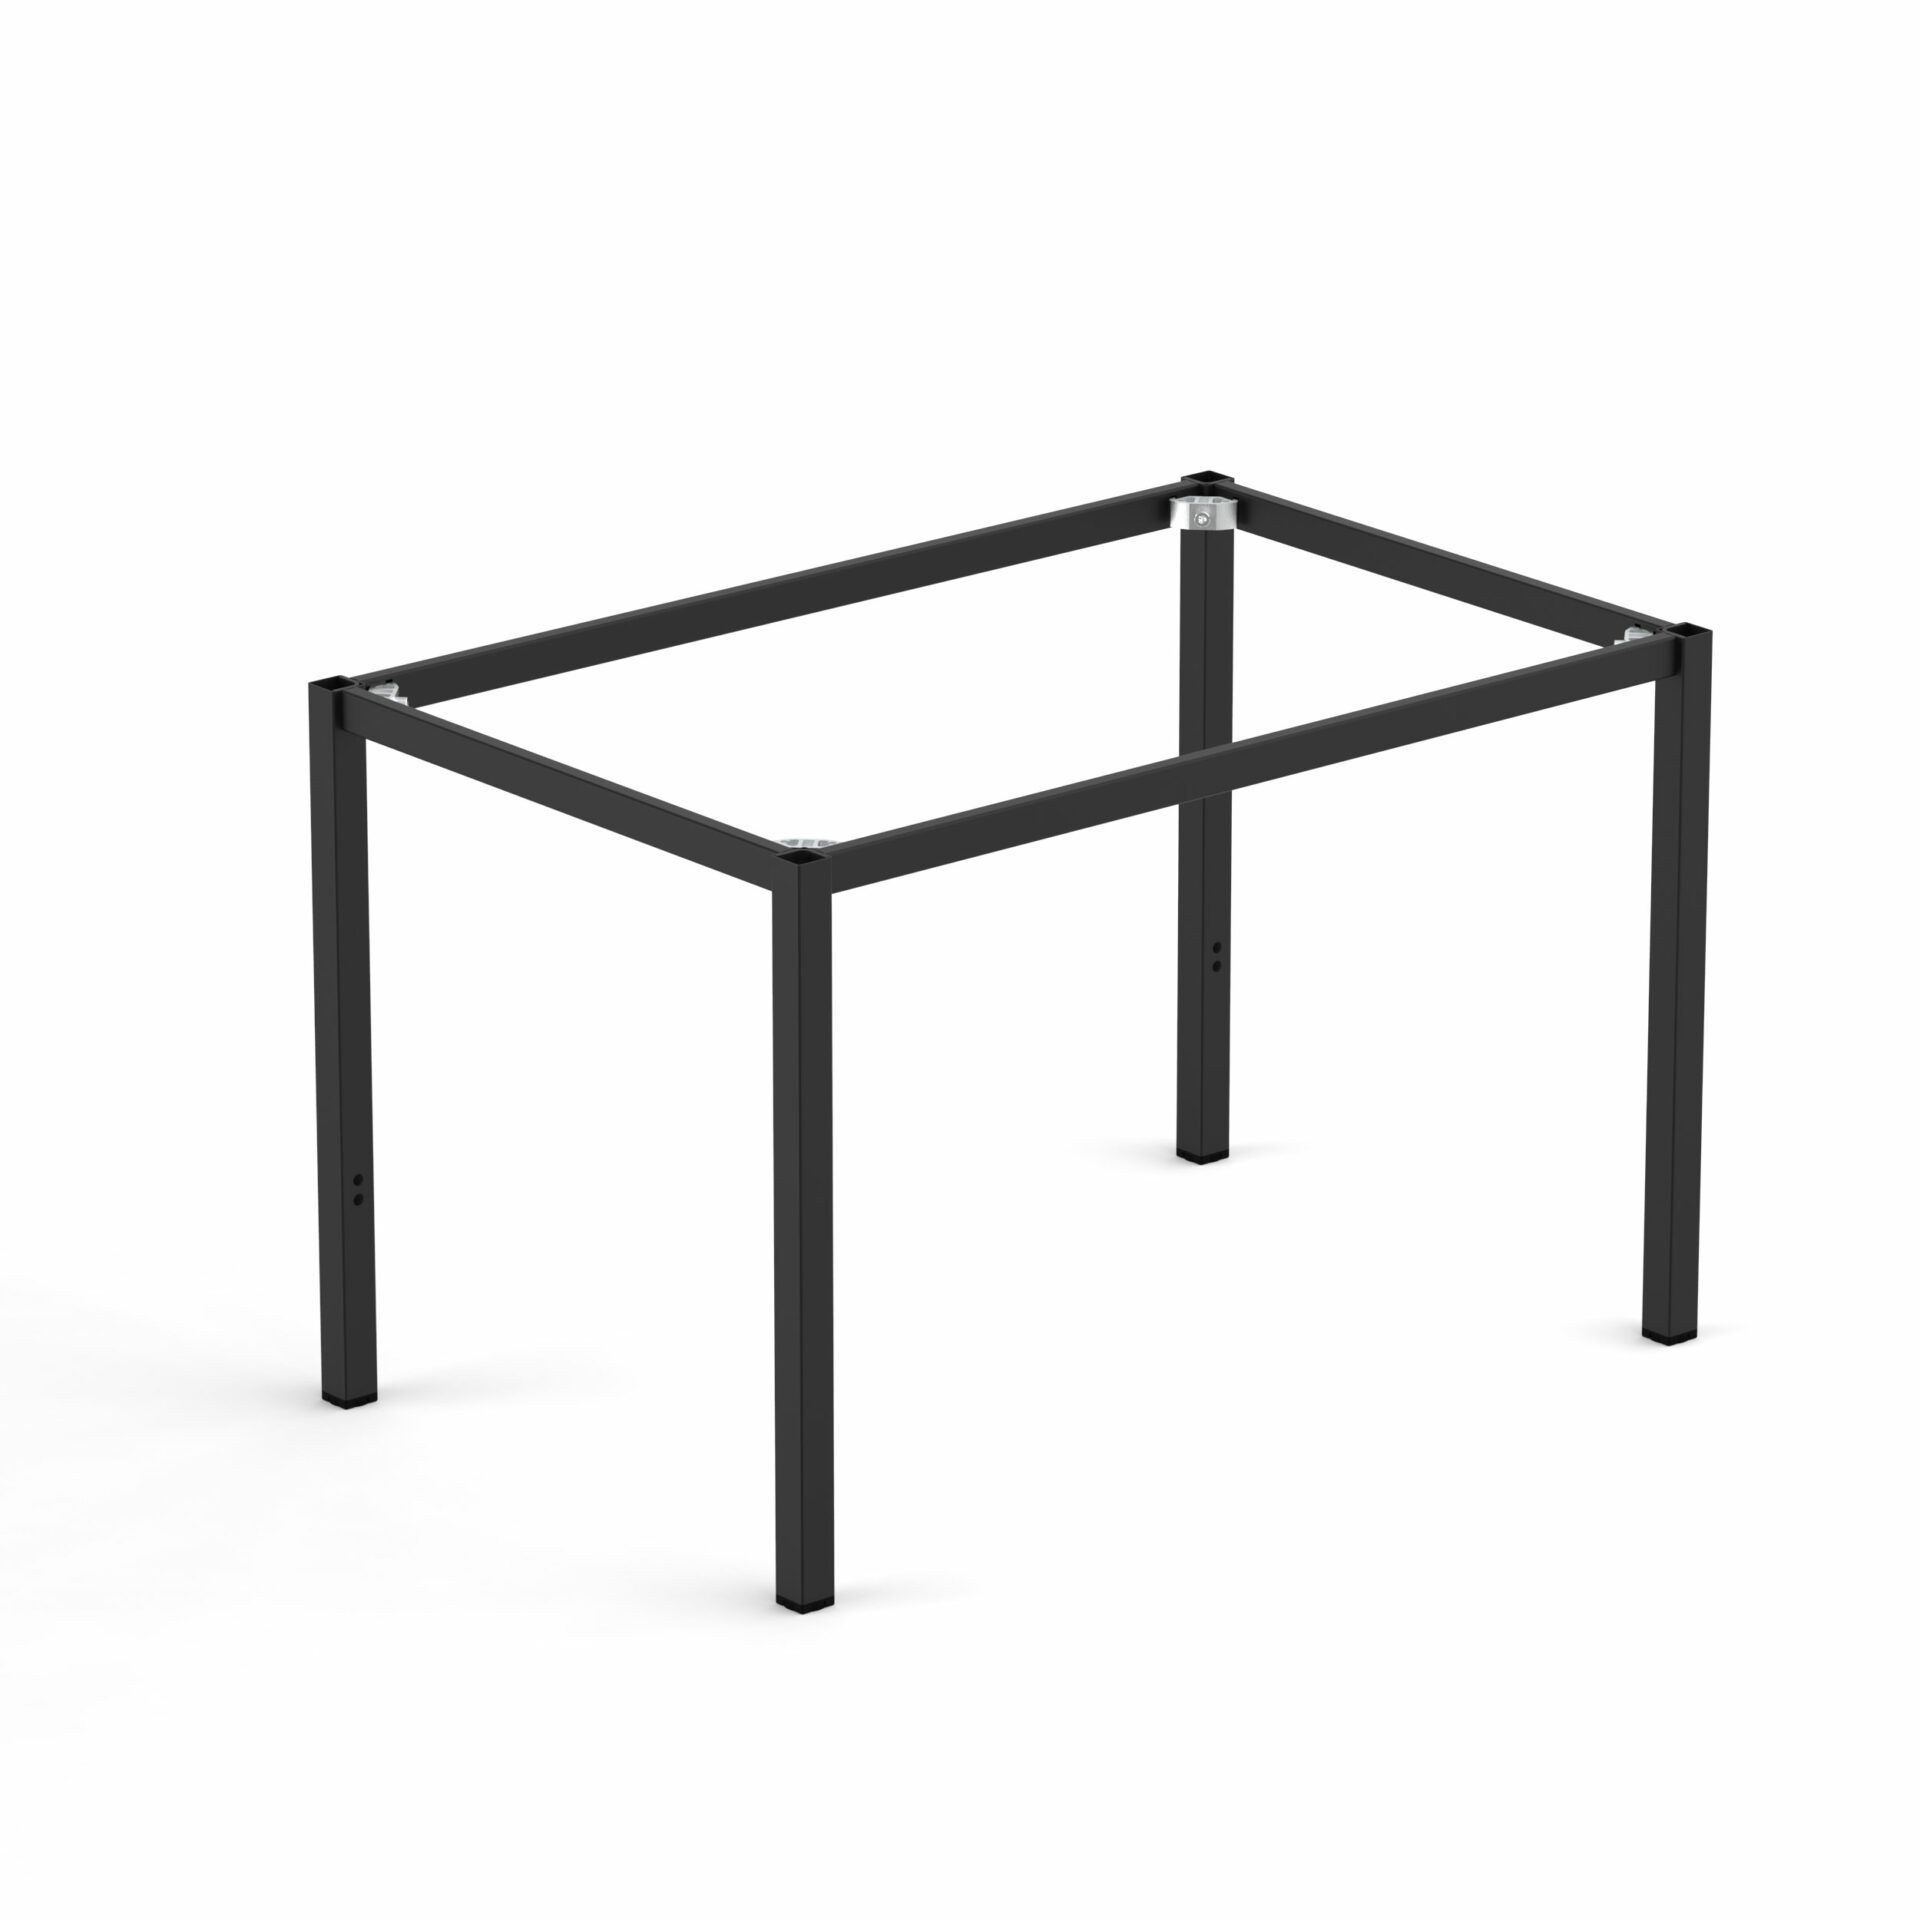 Spire Square leg Table Height Frame 1340 x 740 x 720H